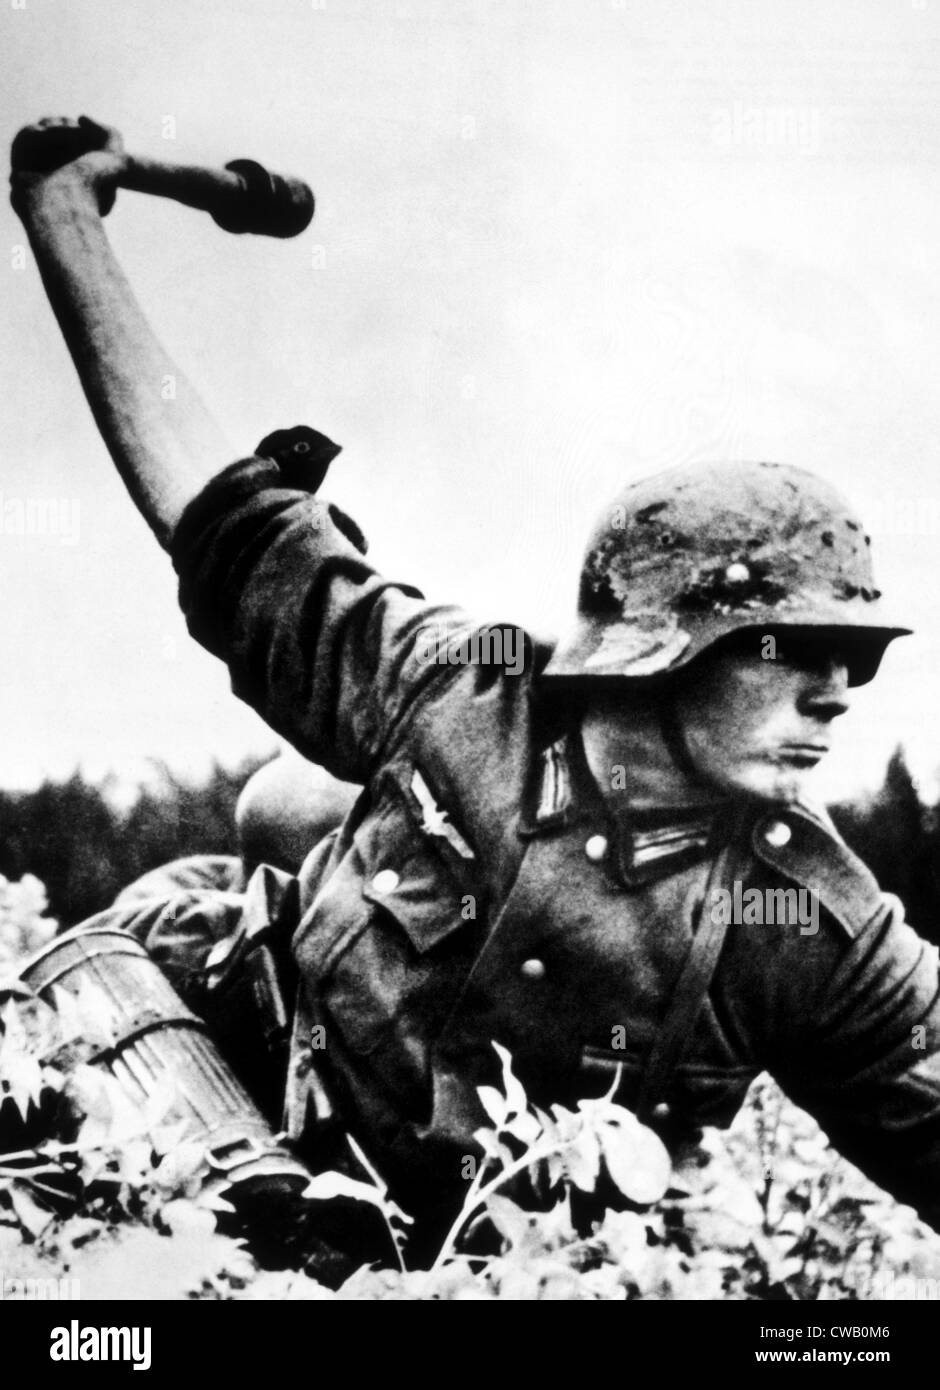 World War II, A German soldier about to threw a hand grenade